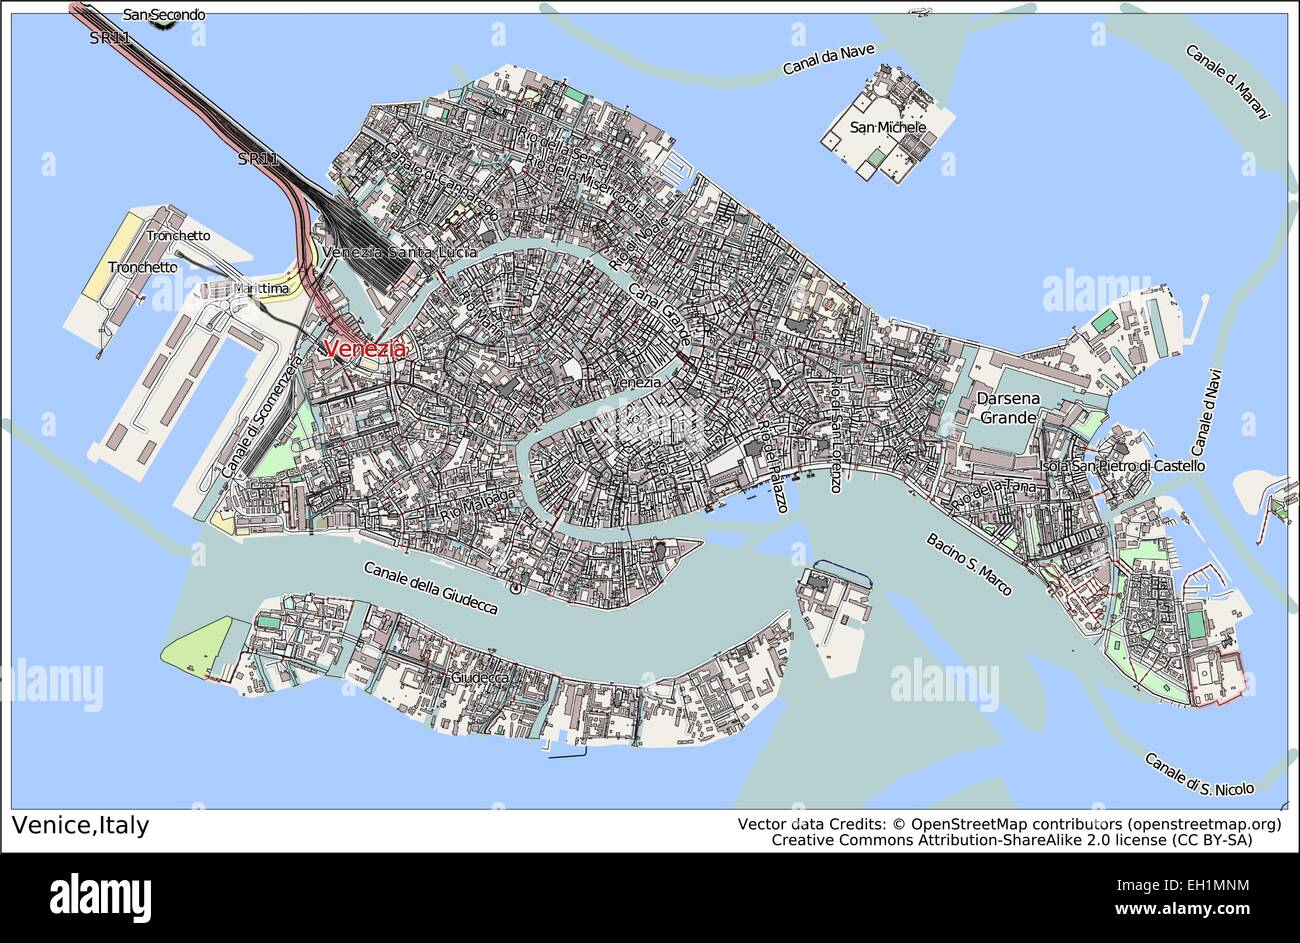 City Island Map Venice Italy island city map Stock Vector Art & Illustration